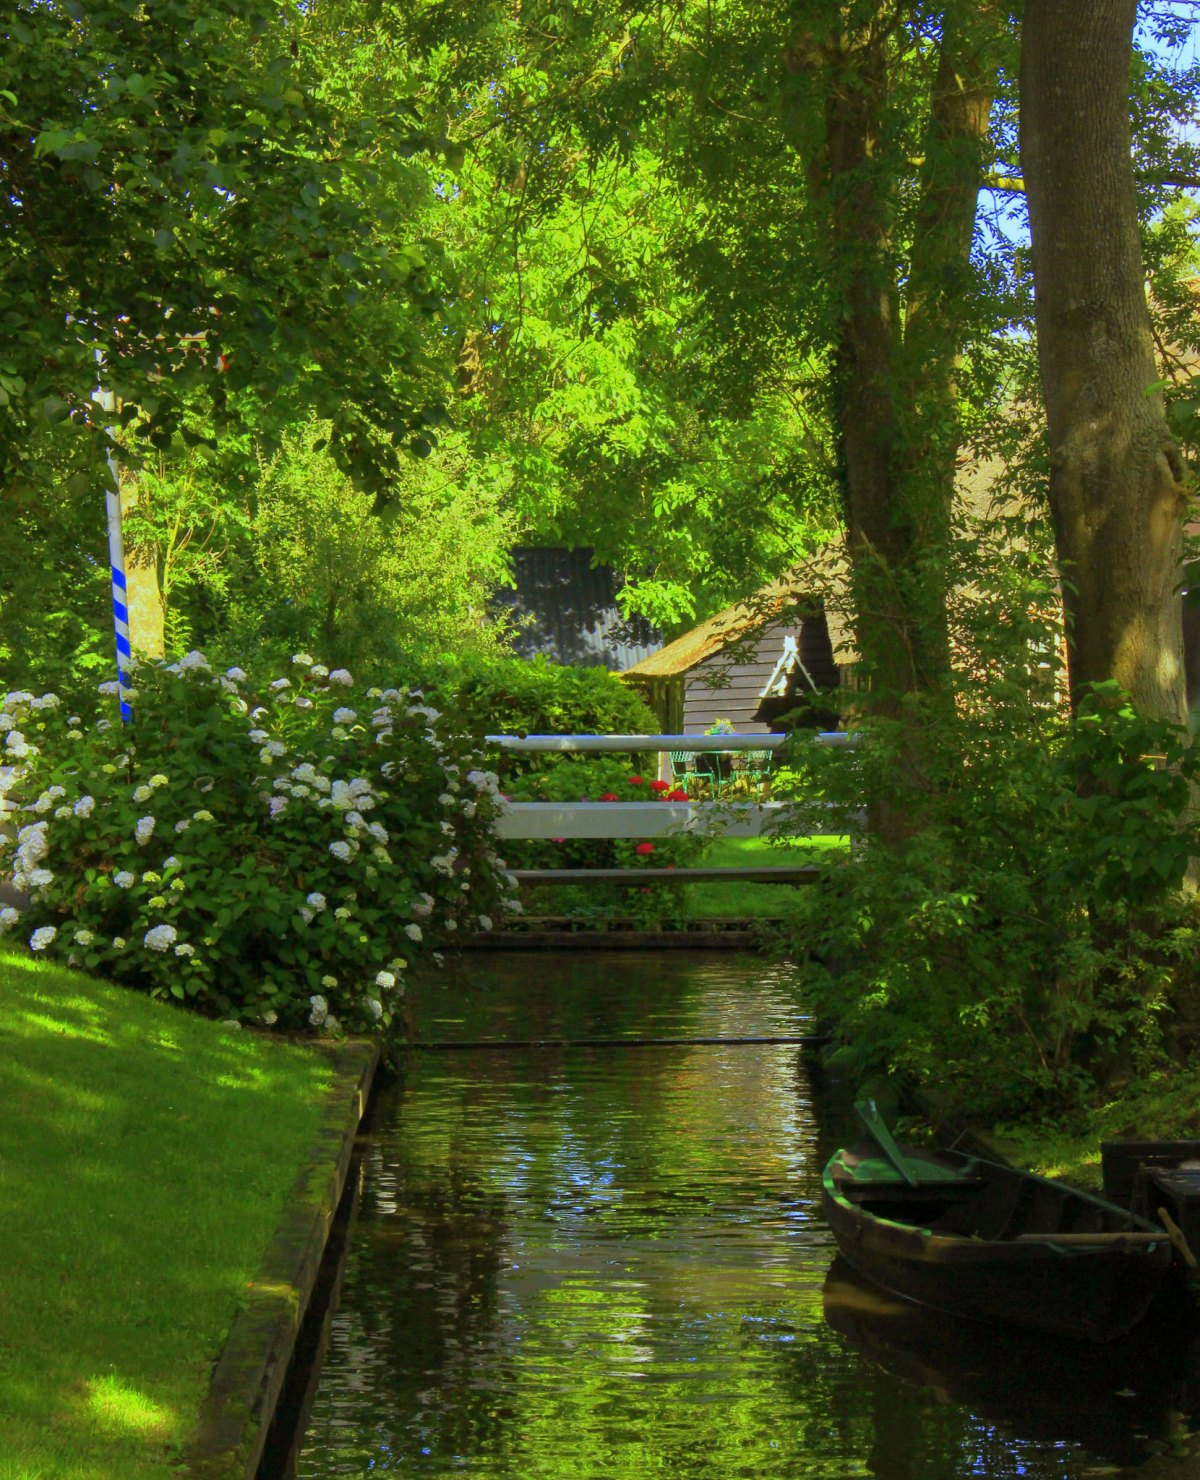 The canals of Giethoorn are shaded by trees.